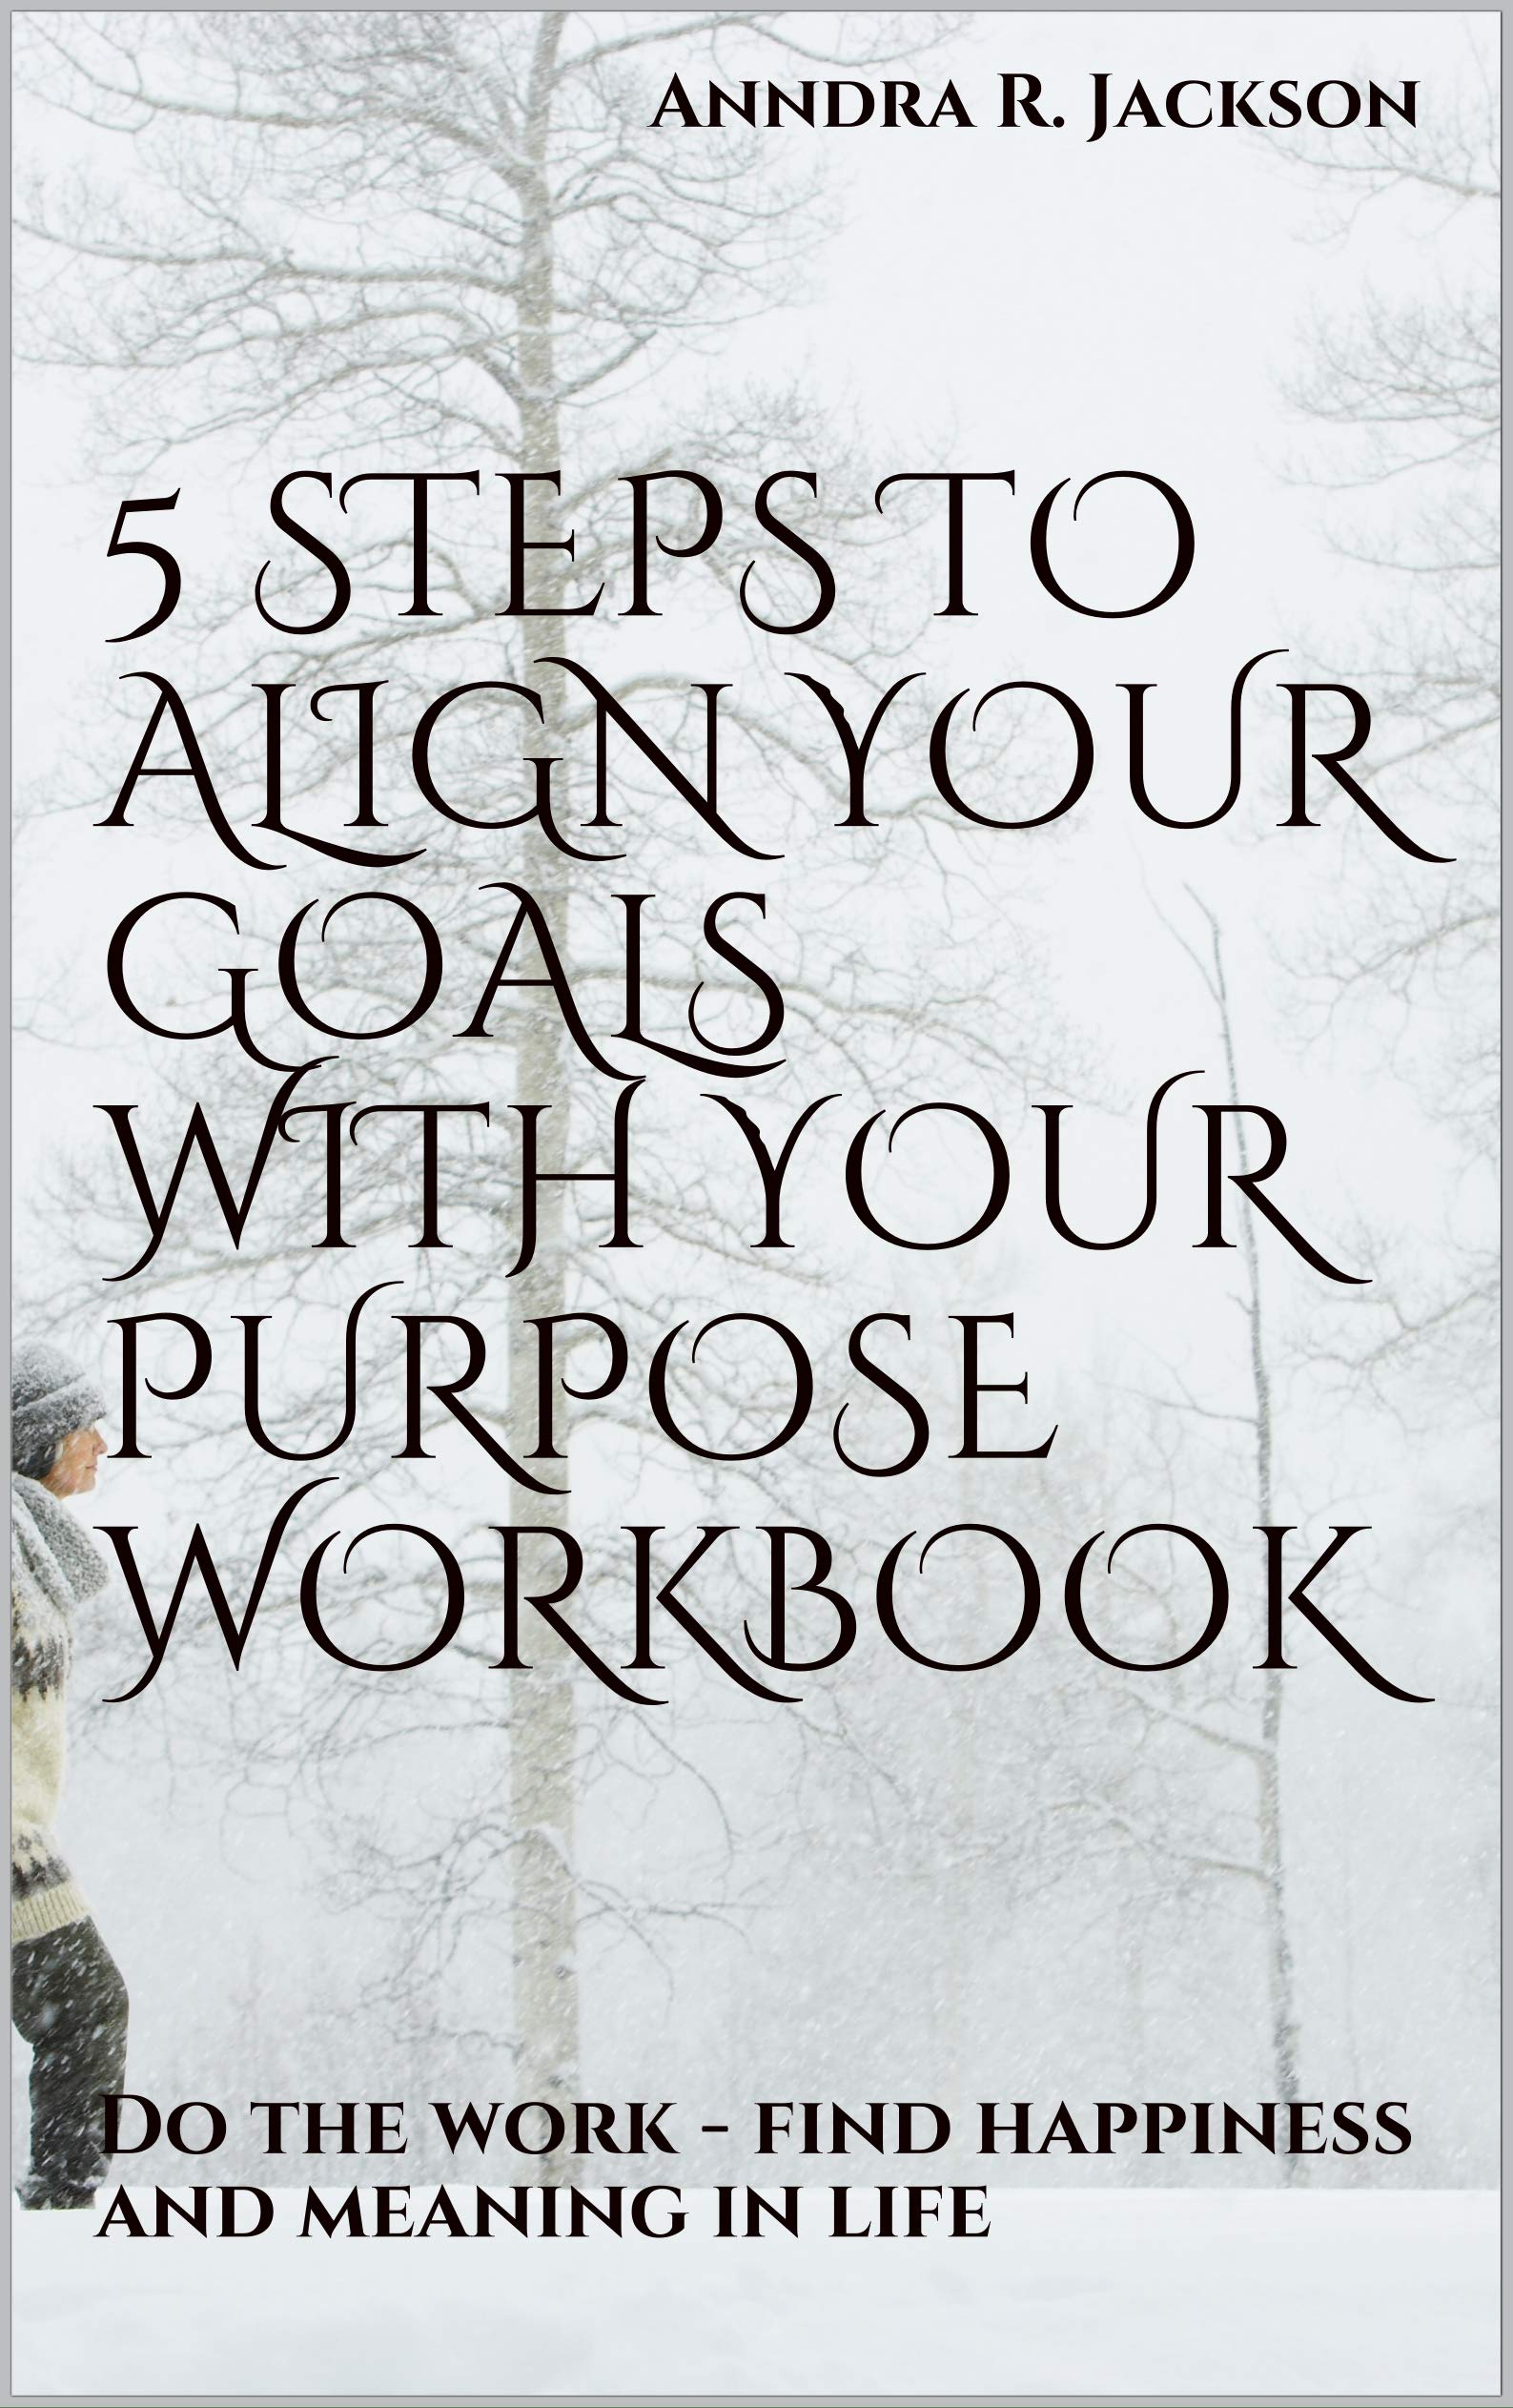 5 Steps to Align Your Goals with Your Purpose workbook: Do the work - find happiness and meaning in life